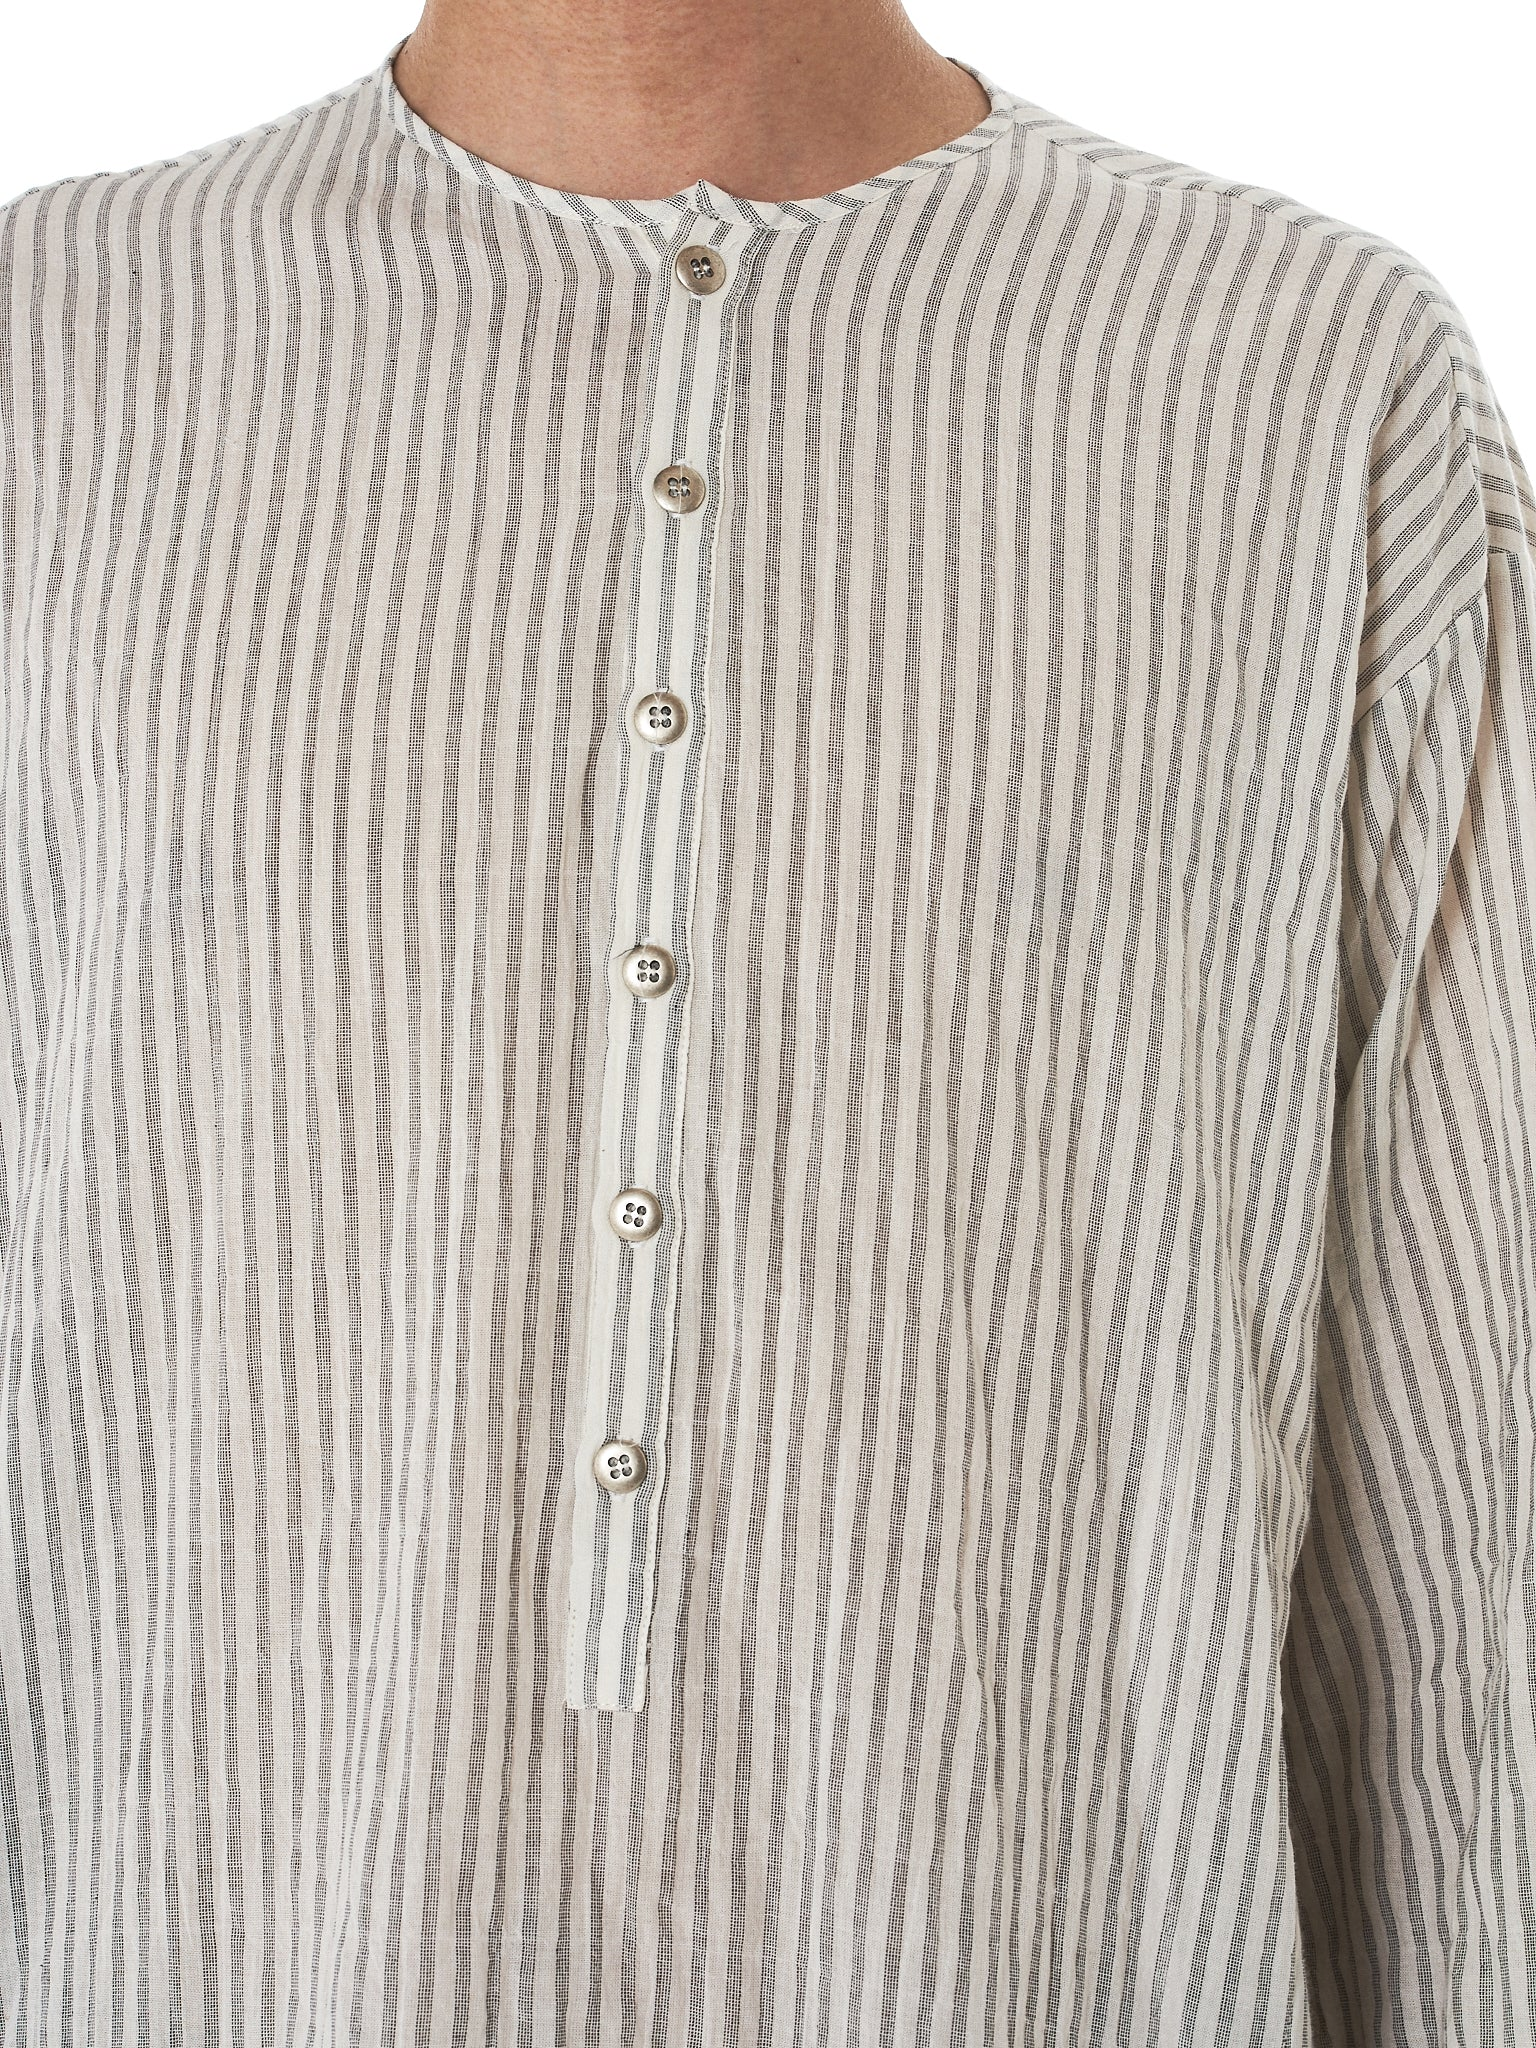 Toogood Long Shirt - Hlorenzo Detail 2